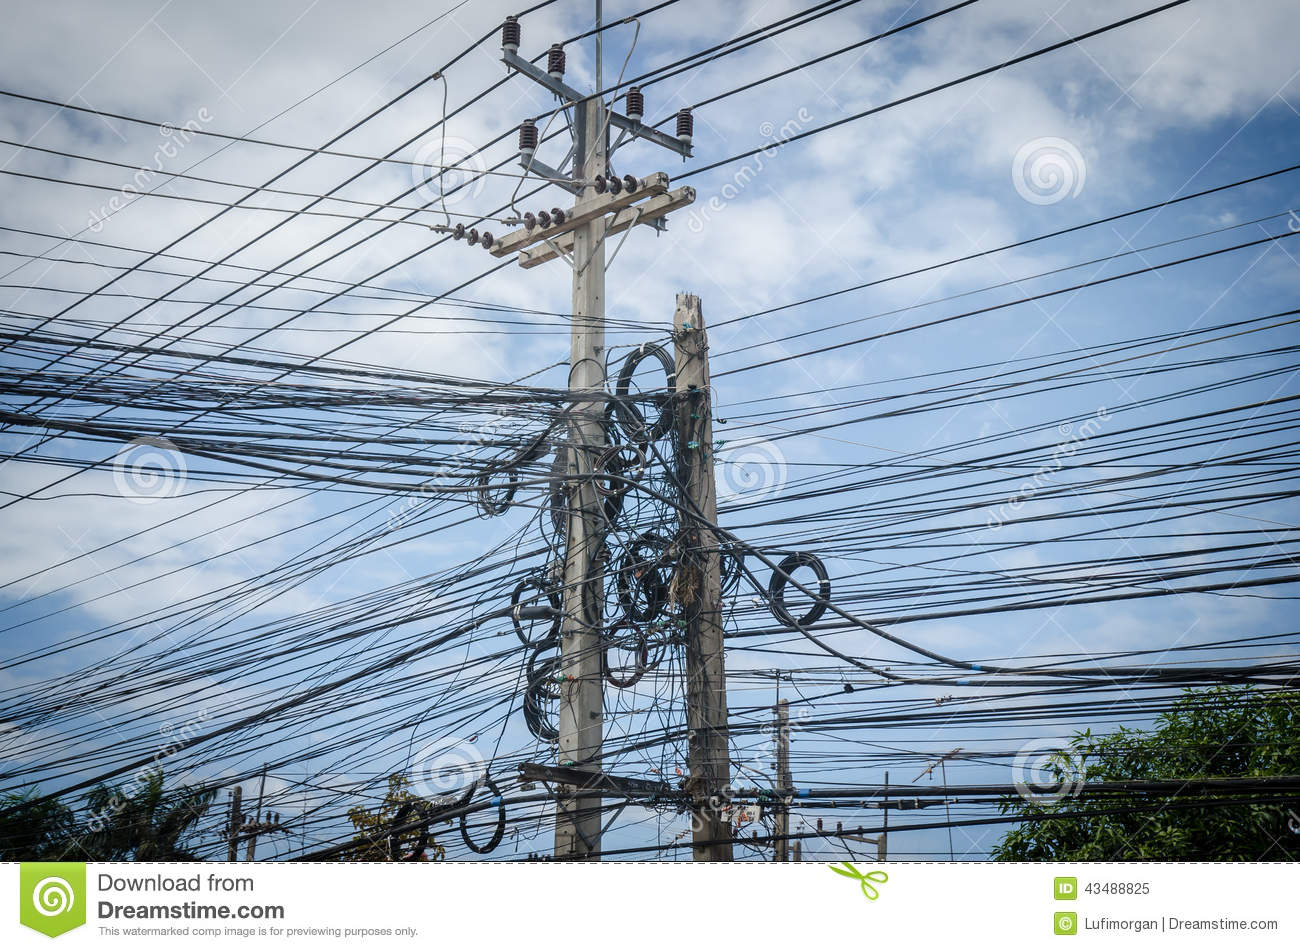 wire electric messy stock photography | cartoondealer.com ... #13